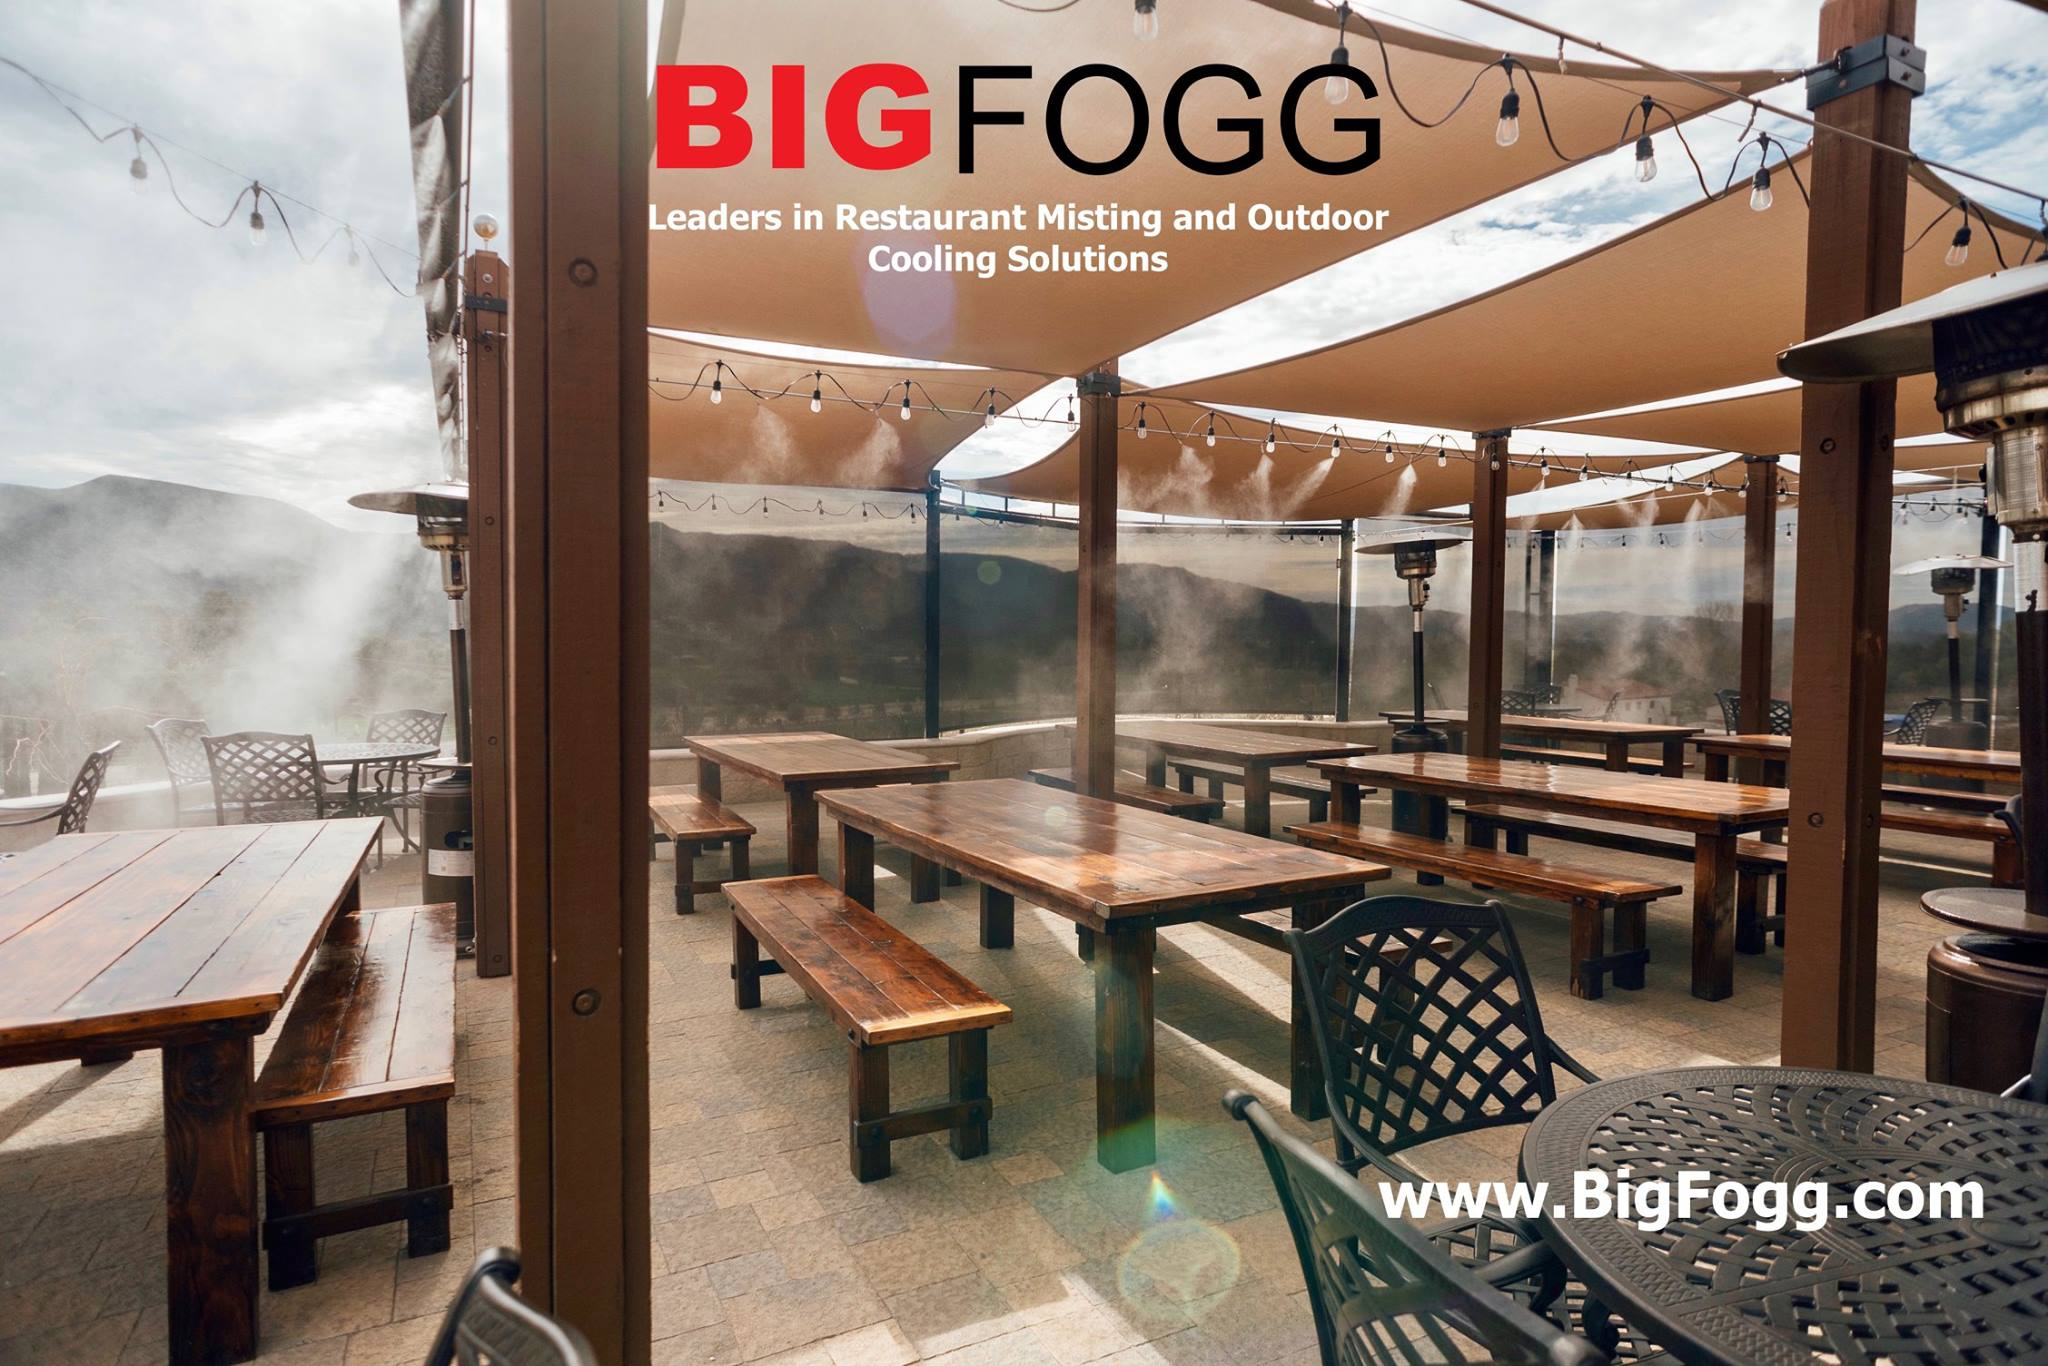 stainless steel patio misting system around restaurant tables with tents, Restaurant misting and outdoor cooling solutions